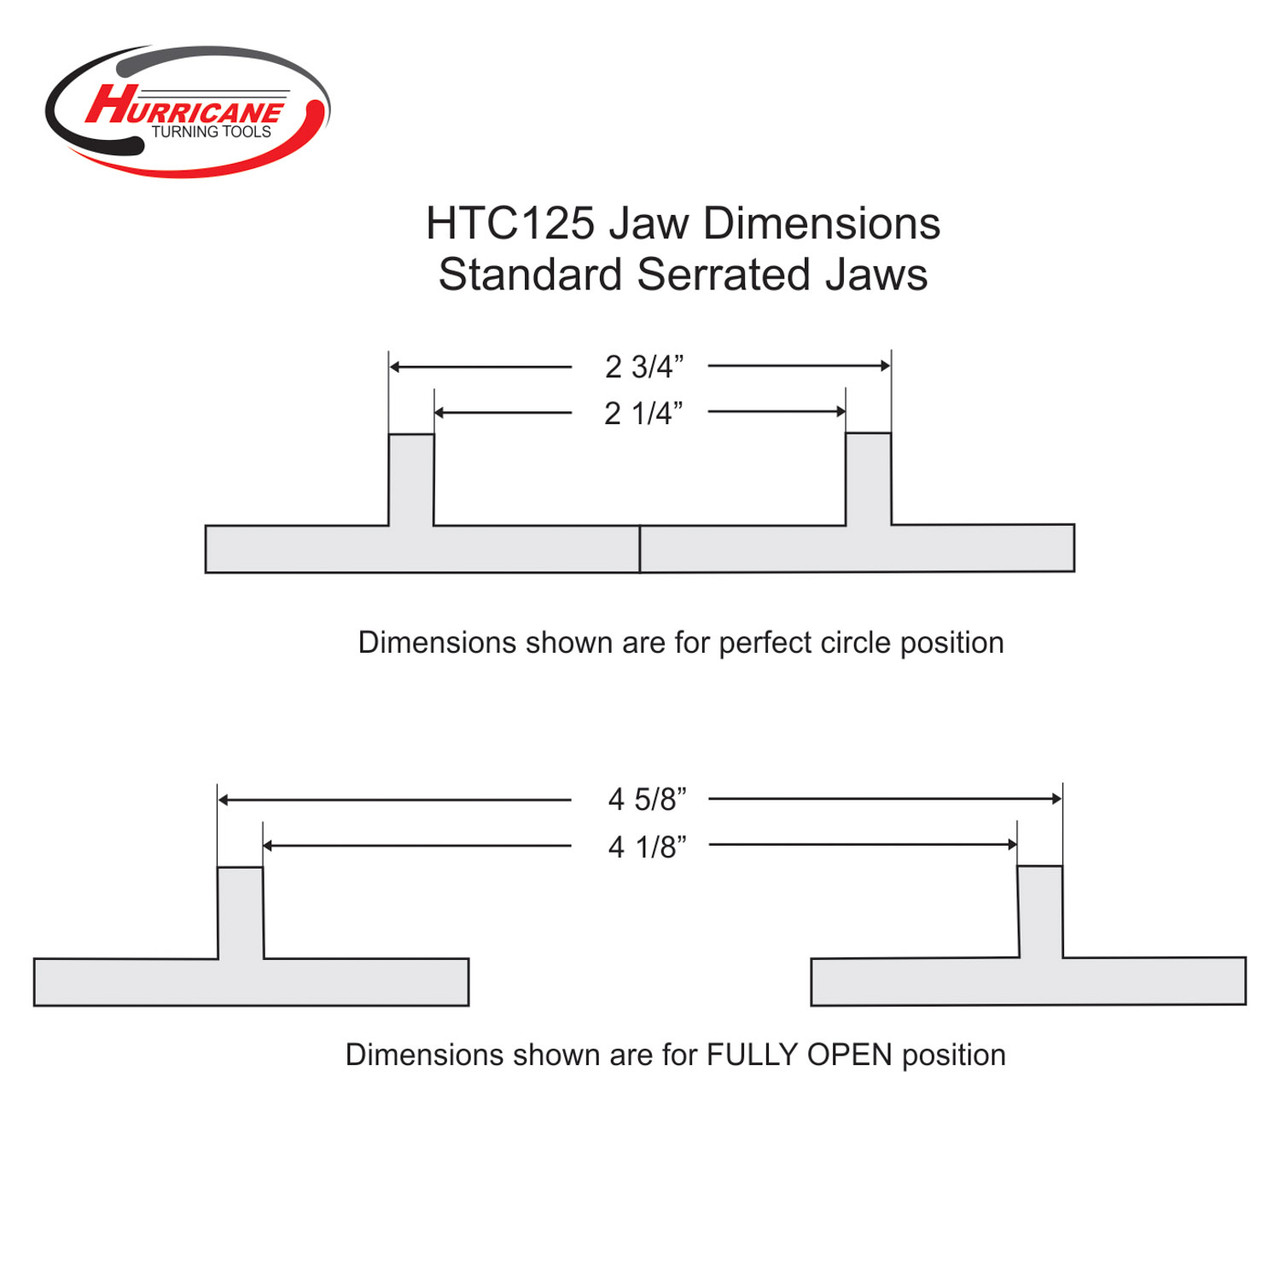 Hurricane Serrated Jaws for the HTC125 Chuck